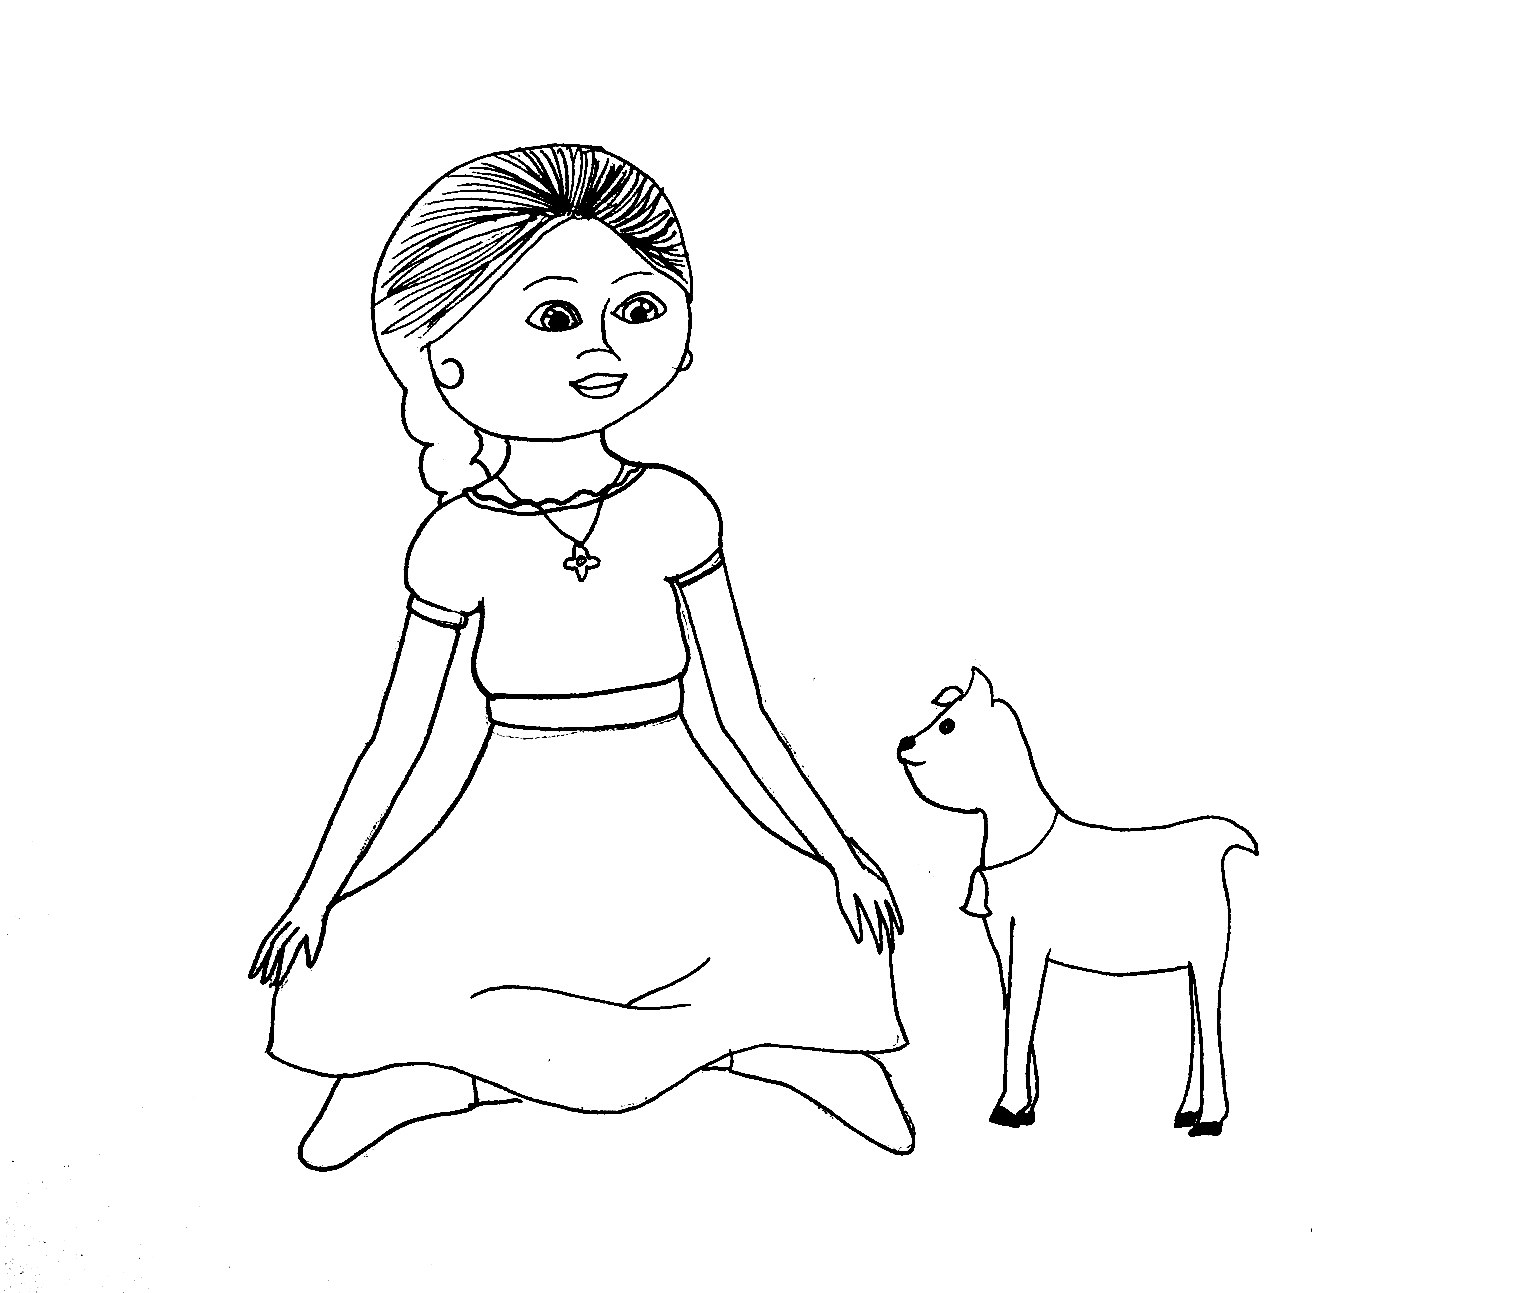 american girl coloring pages grace american girl grace thomas coloring page free printable girl pages american coloring grace